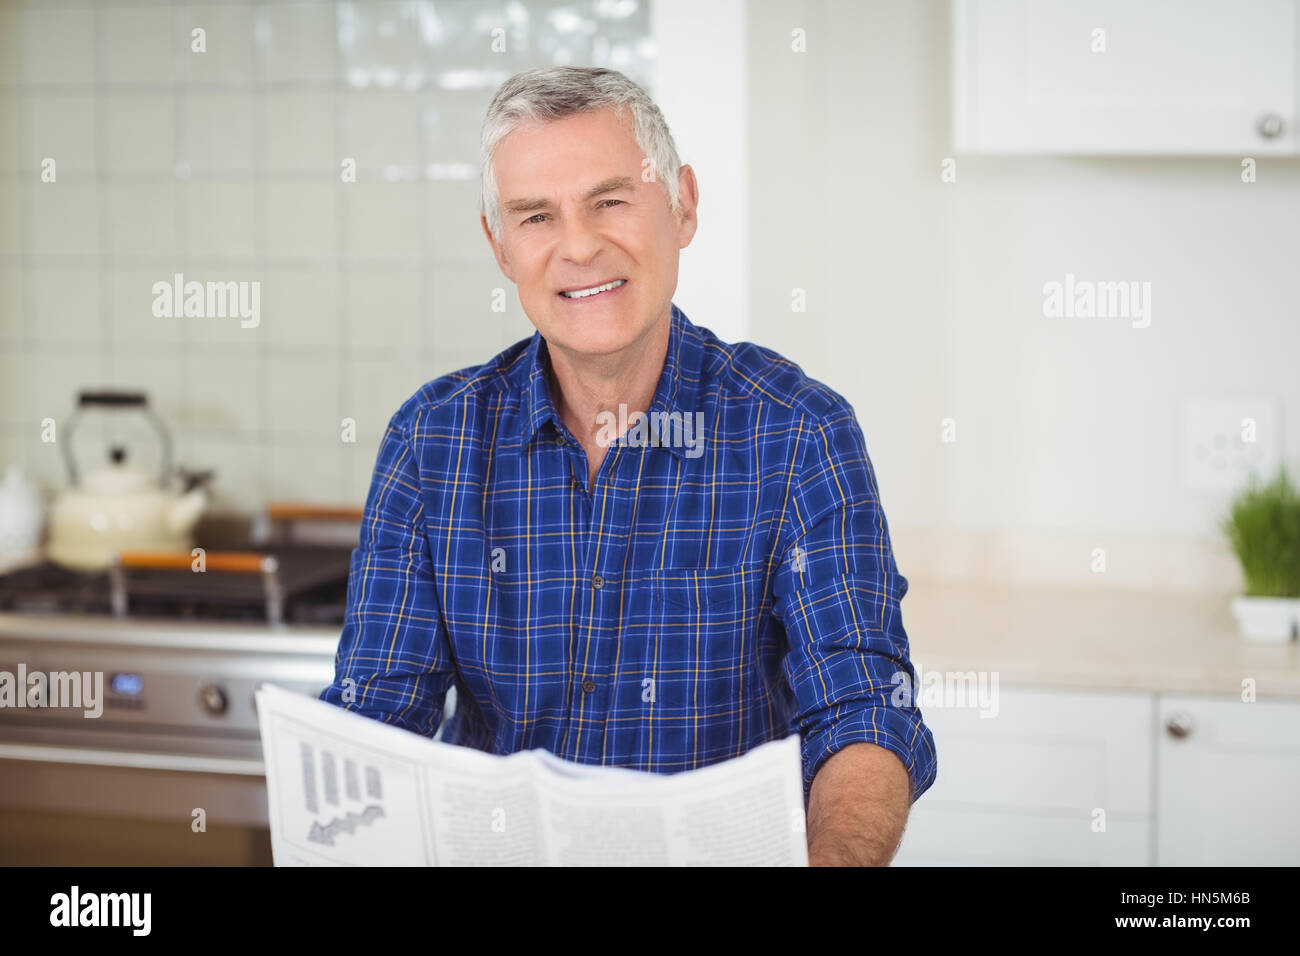 Portrait of senor man reading newspaper in kitchen at home - Stock Image